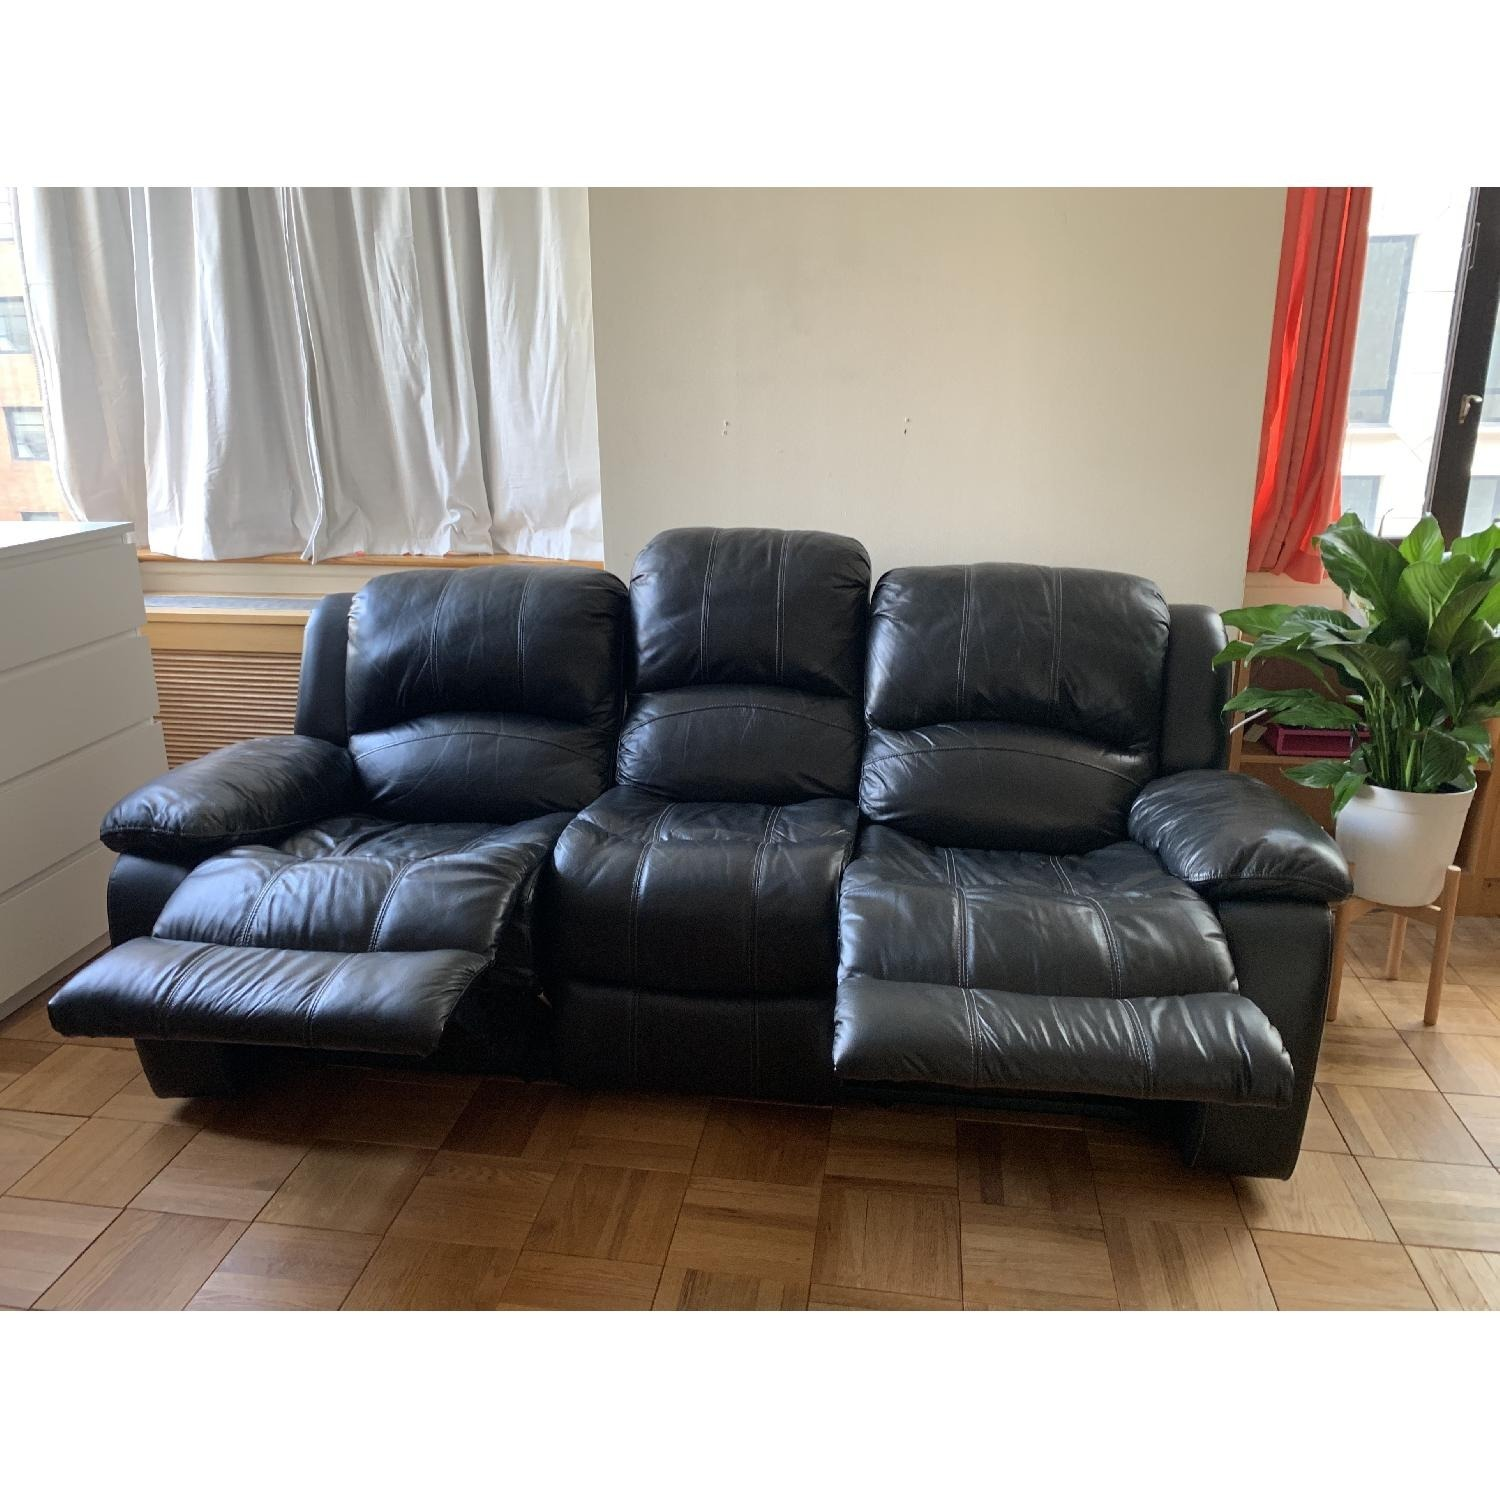 Raymour & Flanigan Leather Reclining 3-Seater - image-5